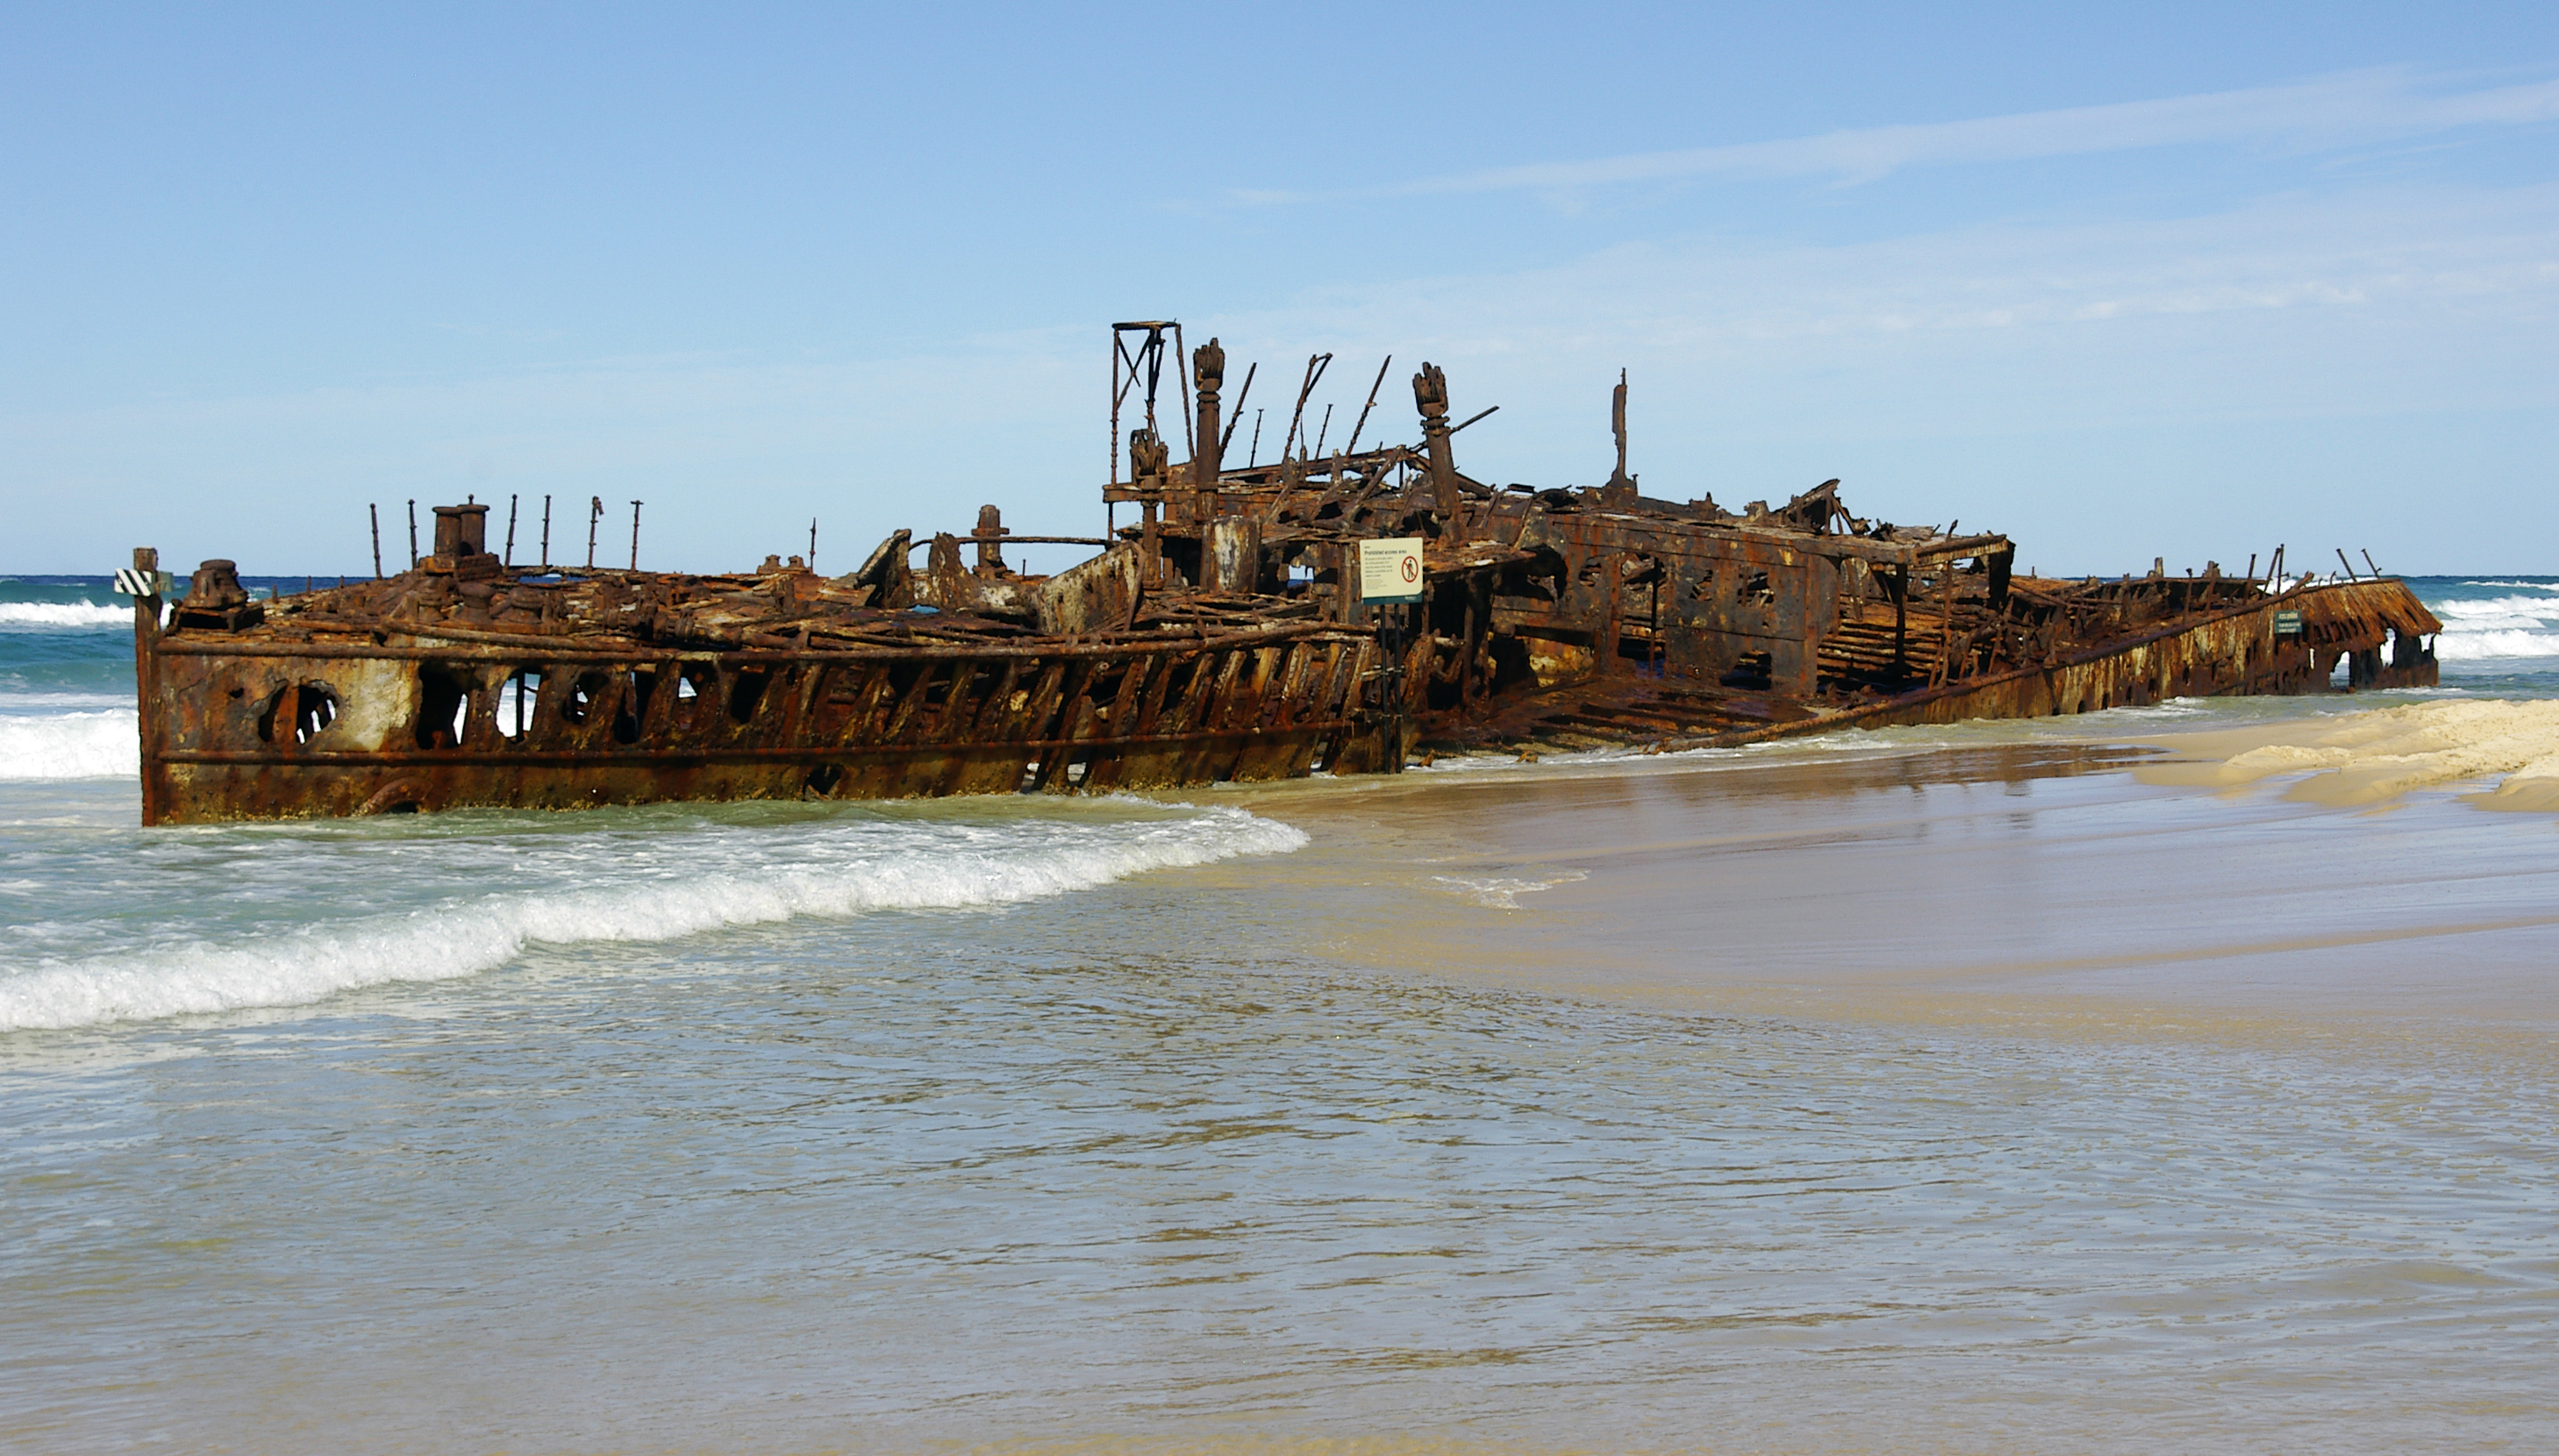 File:Fraser Island shipwreck of Maheno (ship 1905) IGP4364